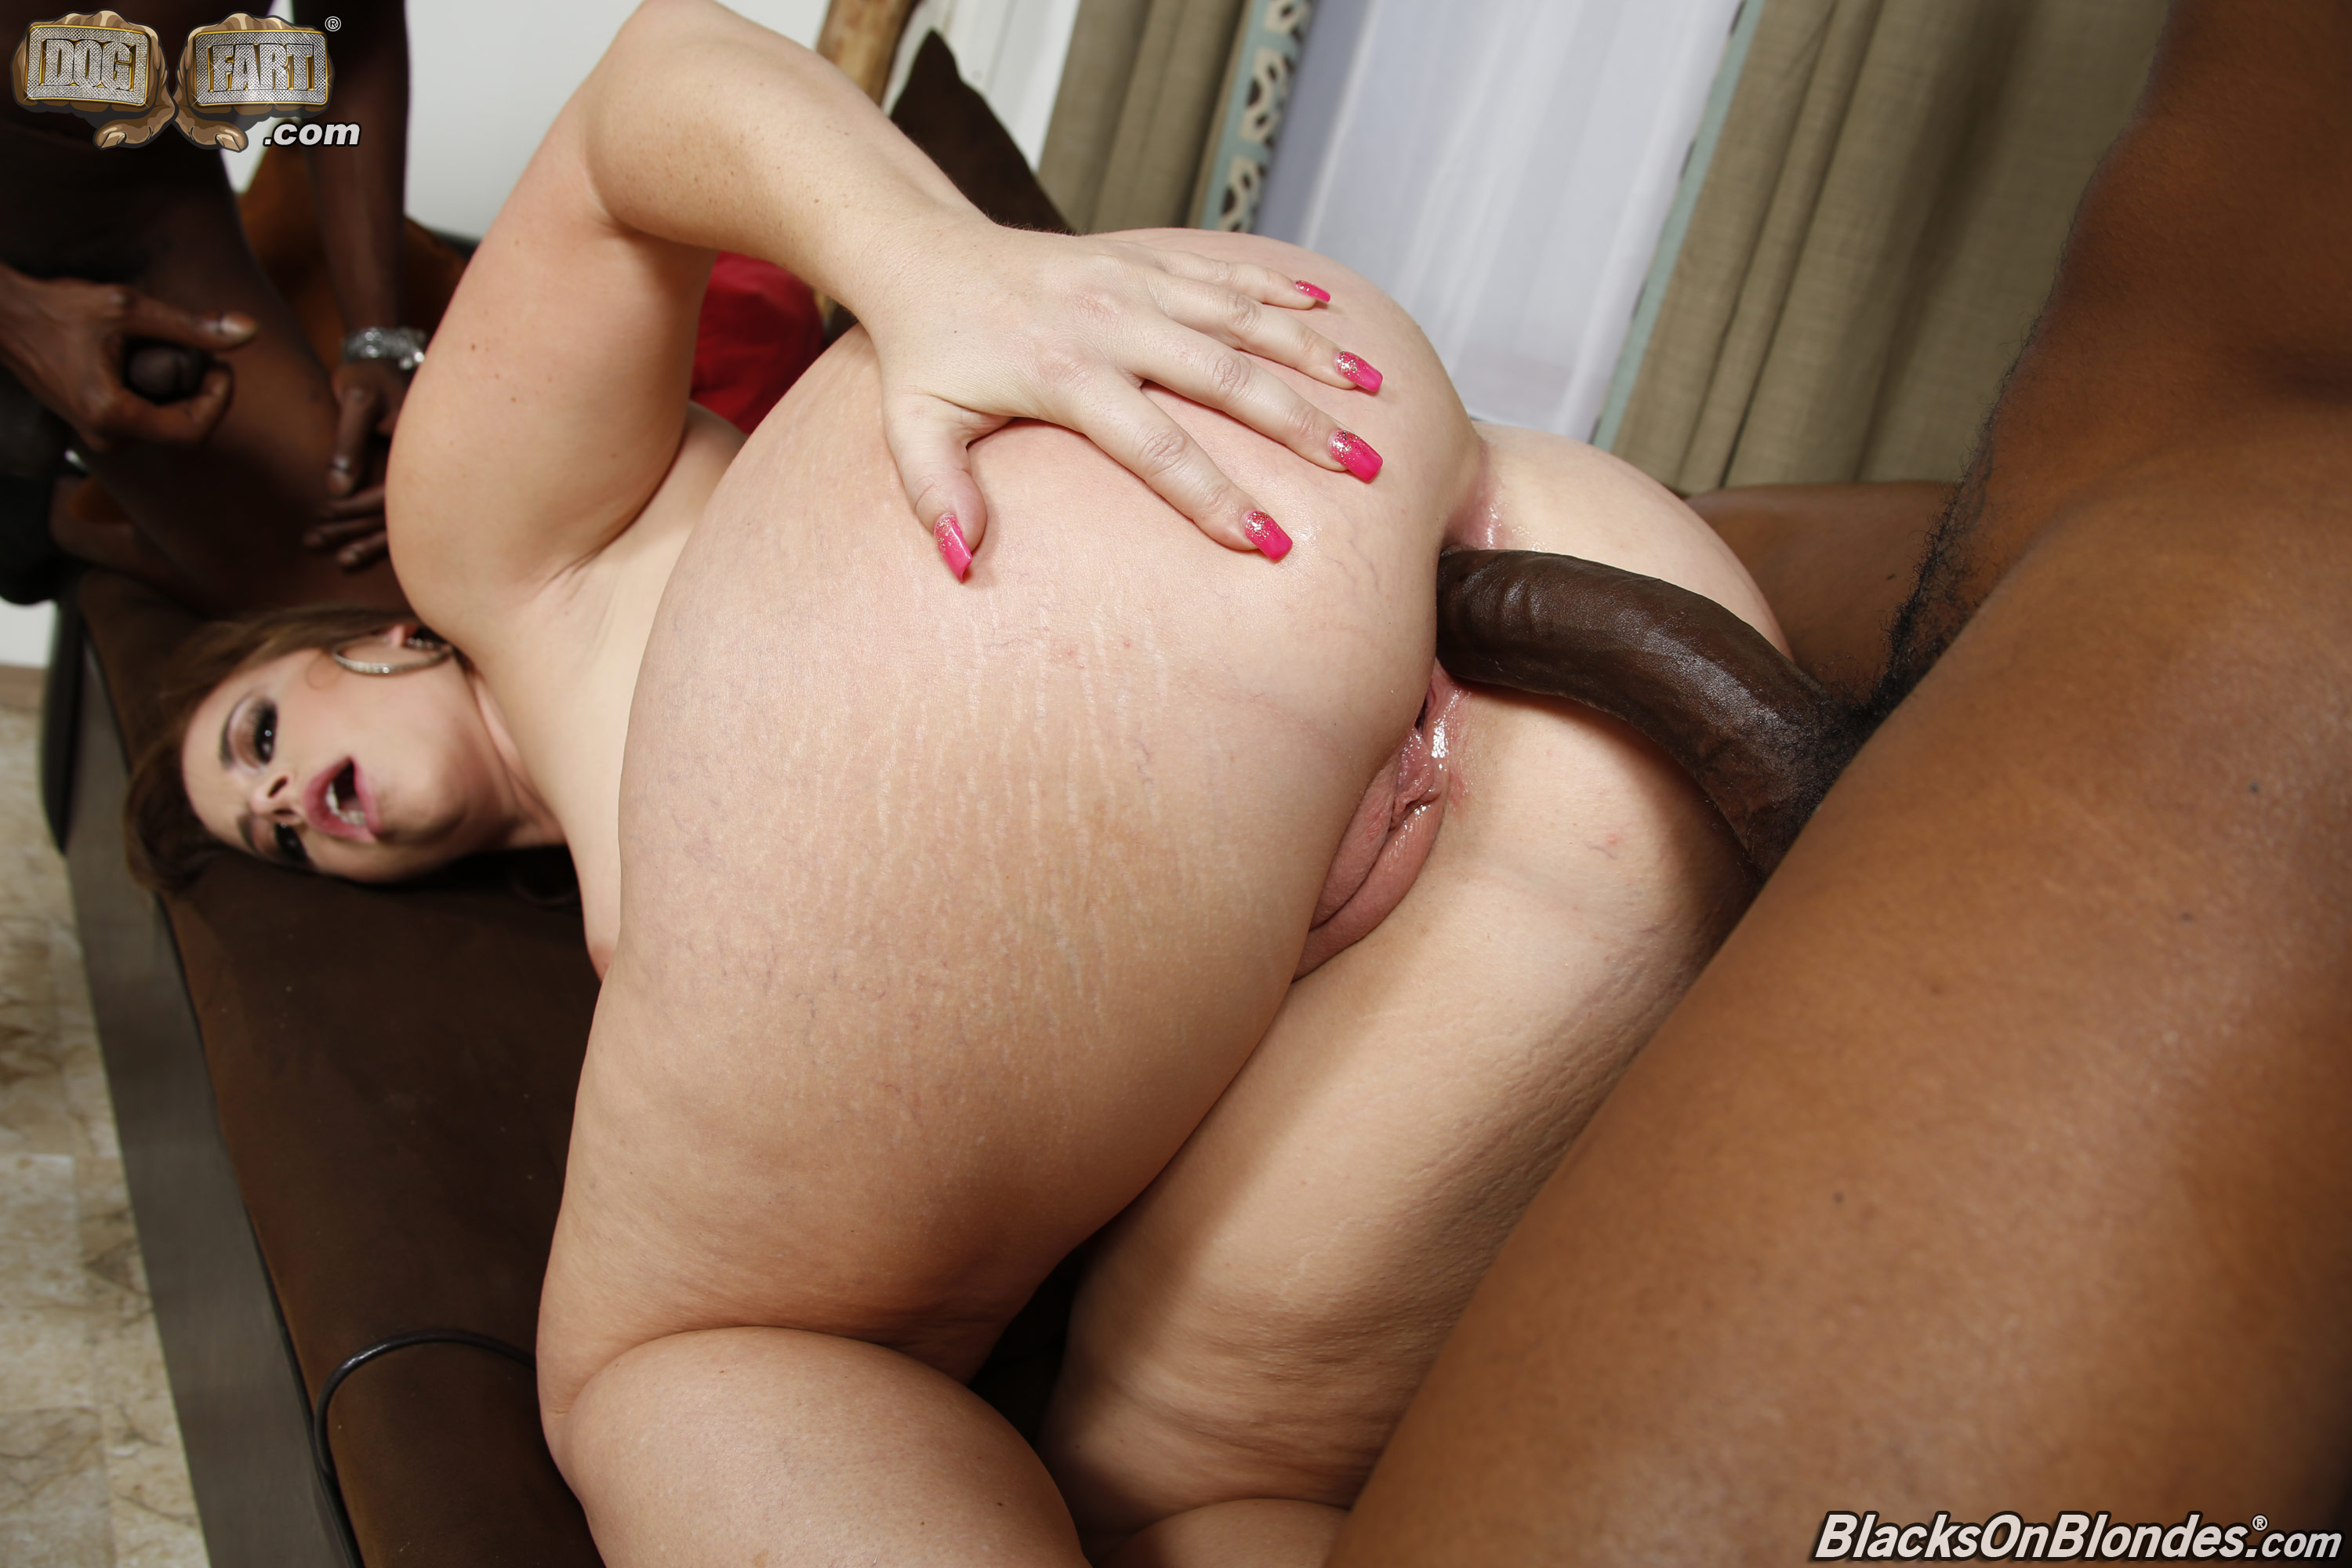 hot hell, would dead girl blowjob man, she knows